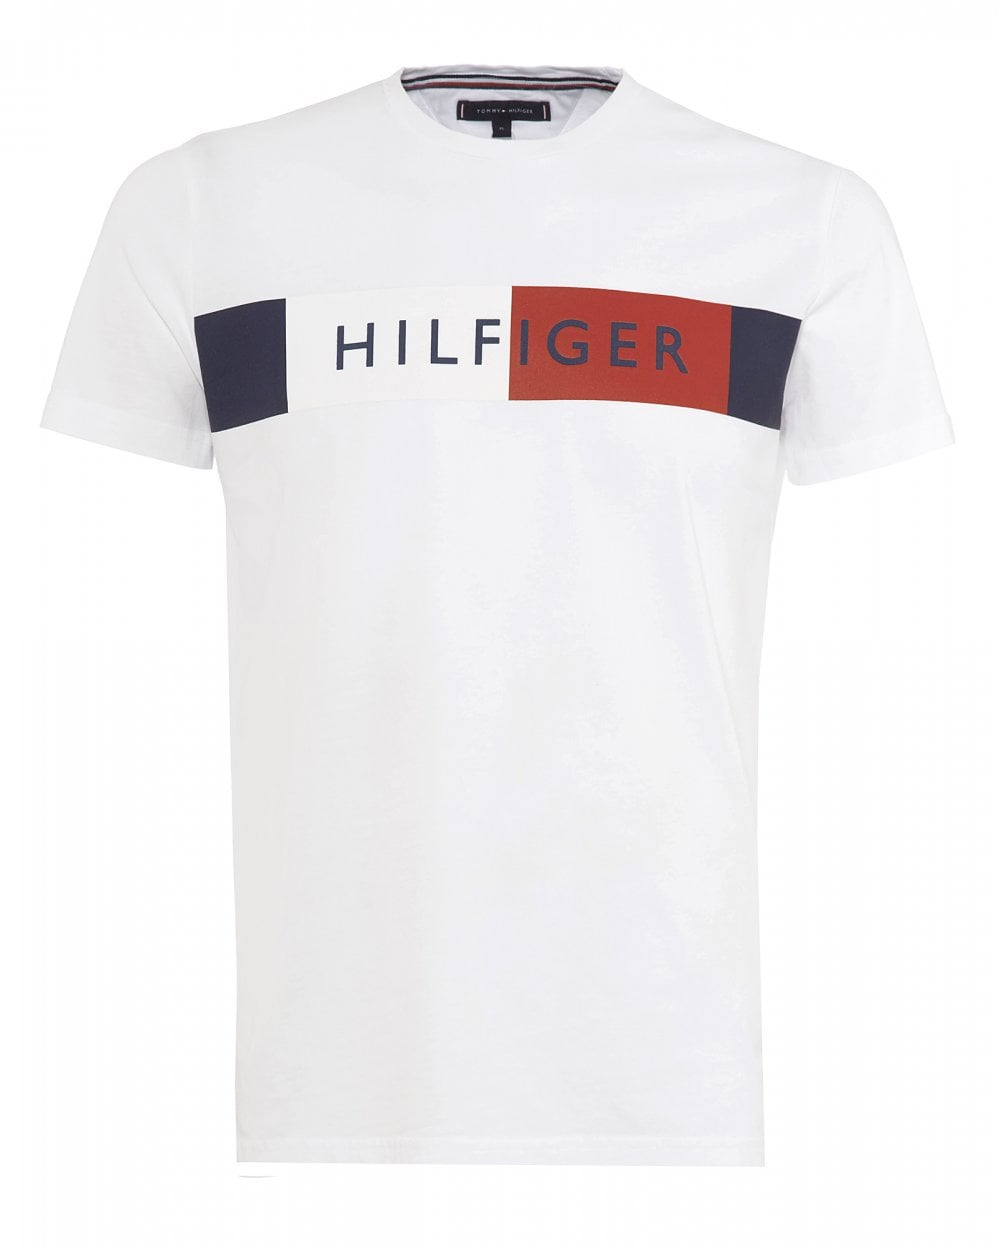 735a5d8a9 Tommy Hilfiger Mens Chest Stripe T-Shirt, Colour Block Tee